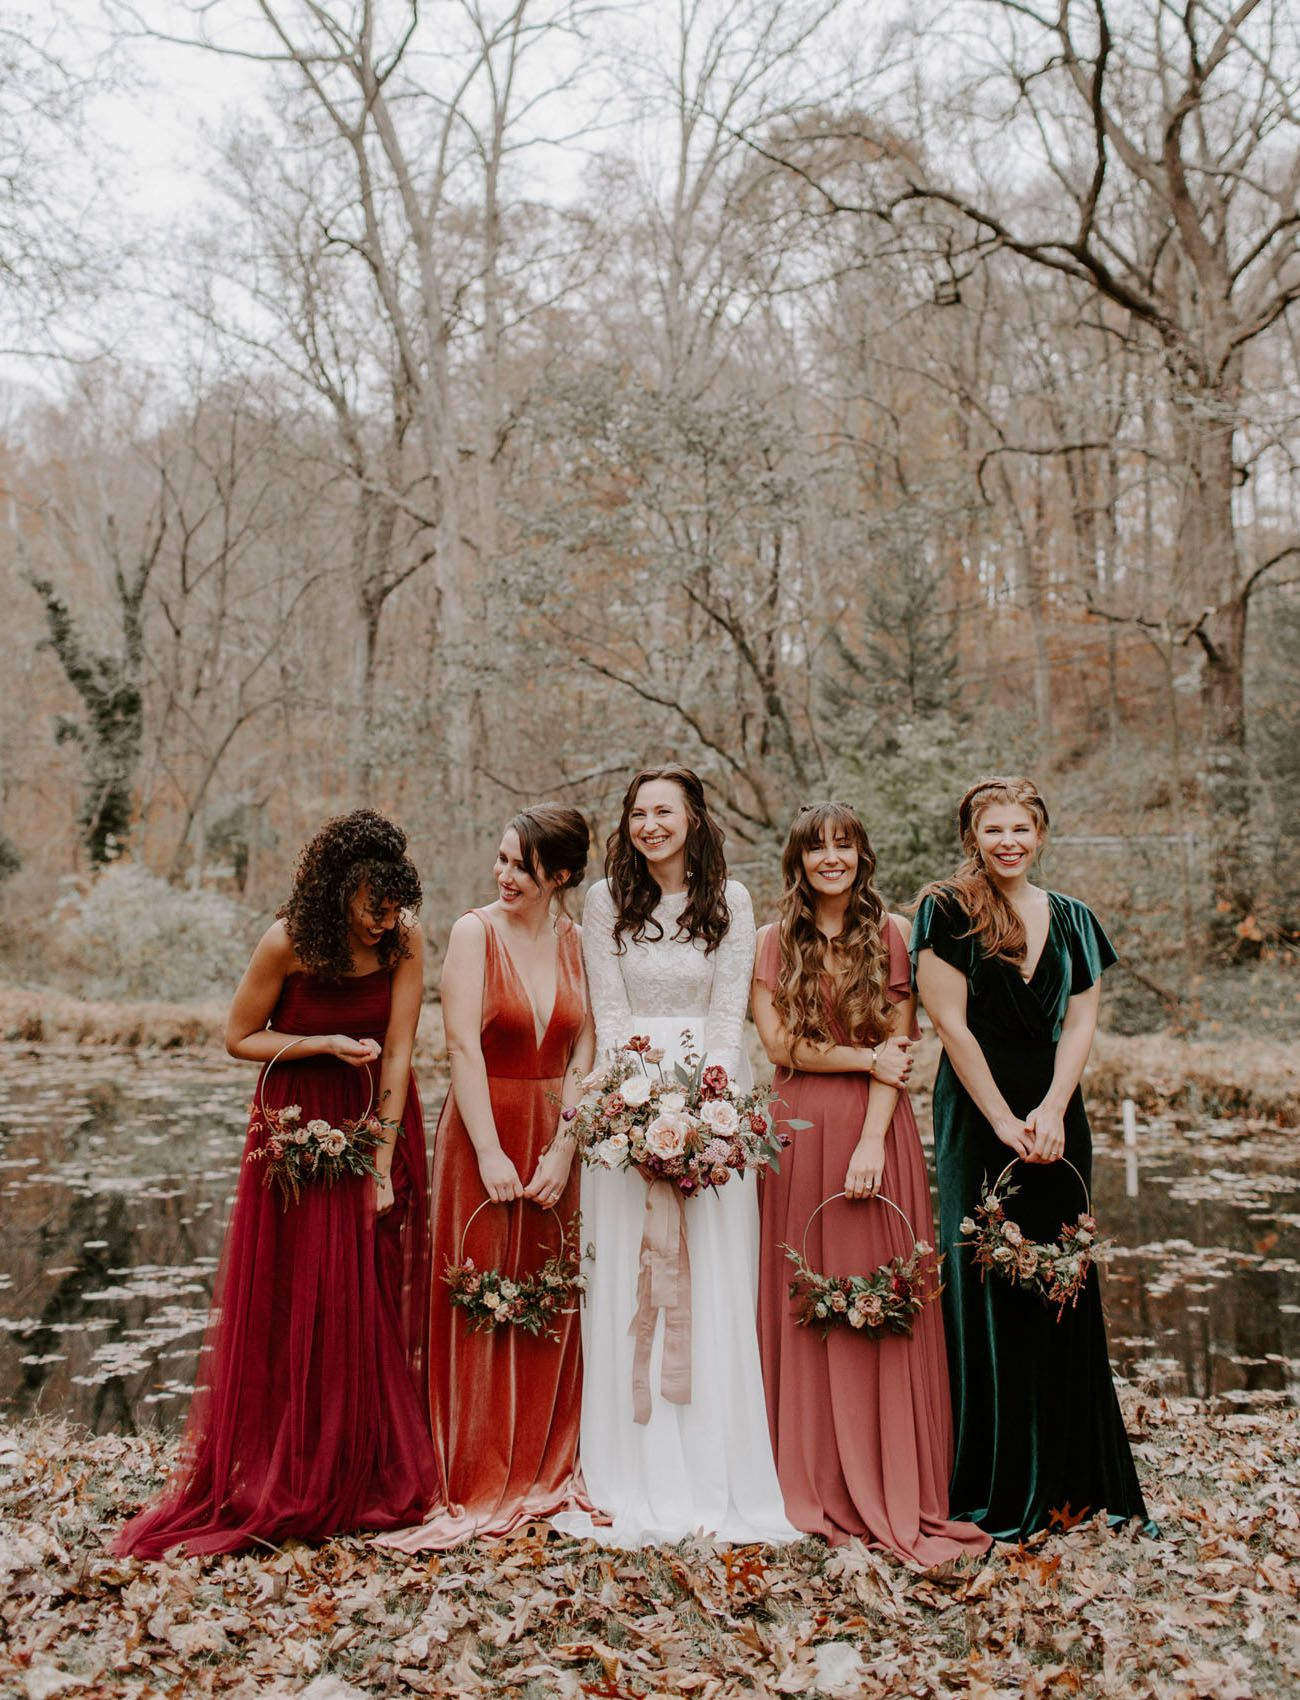 You Ve Got To See The Bridesmaids In Jewel Tones Floral Hoops In